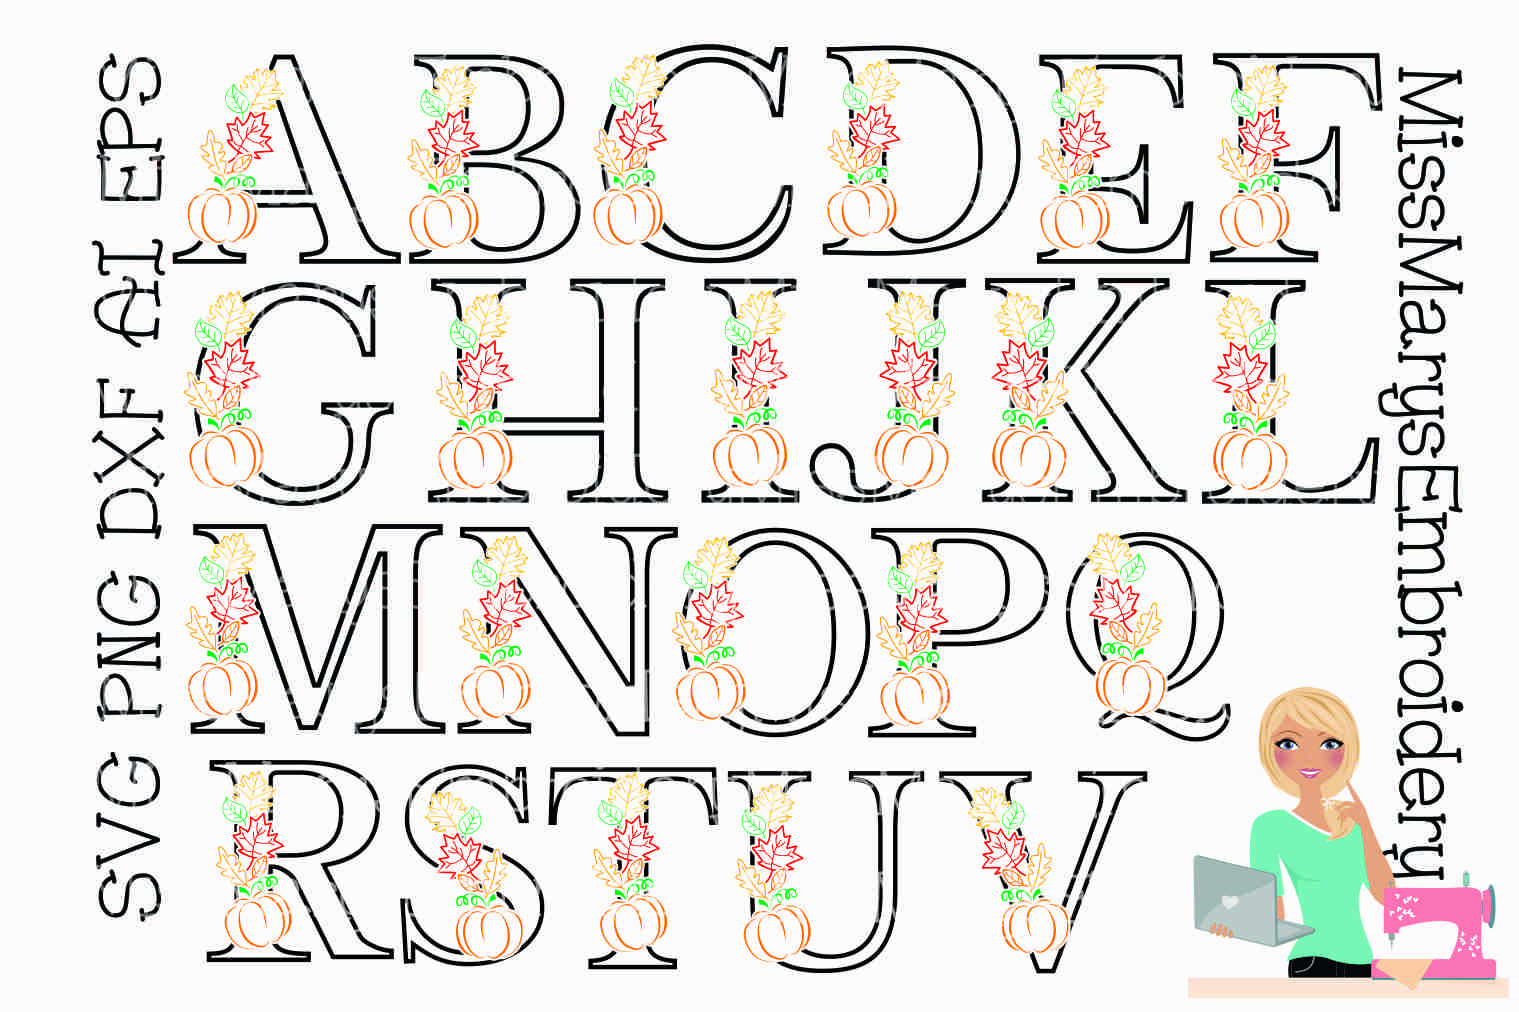 Fall Pumpkin Leaf Letters SVG Cutting File PNG DXF AI EPS example image 2